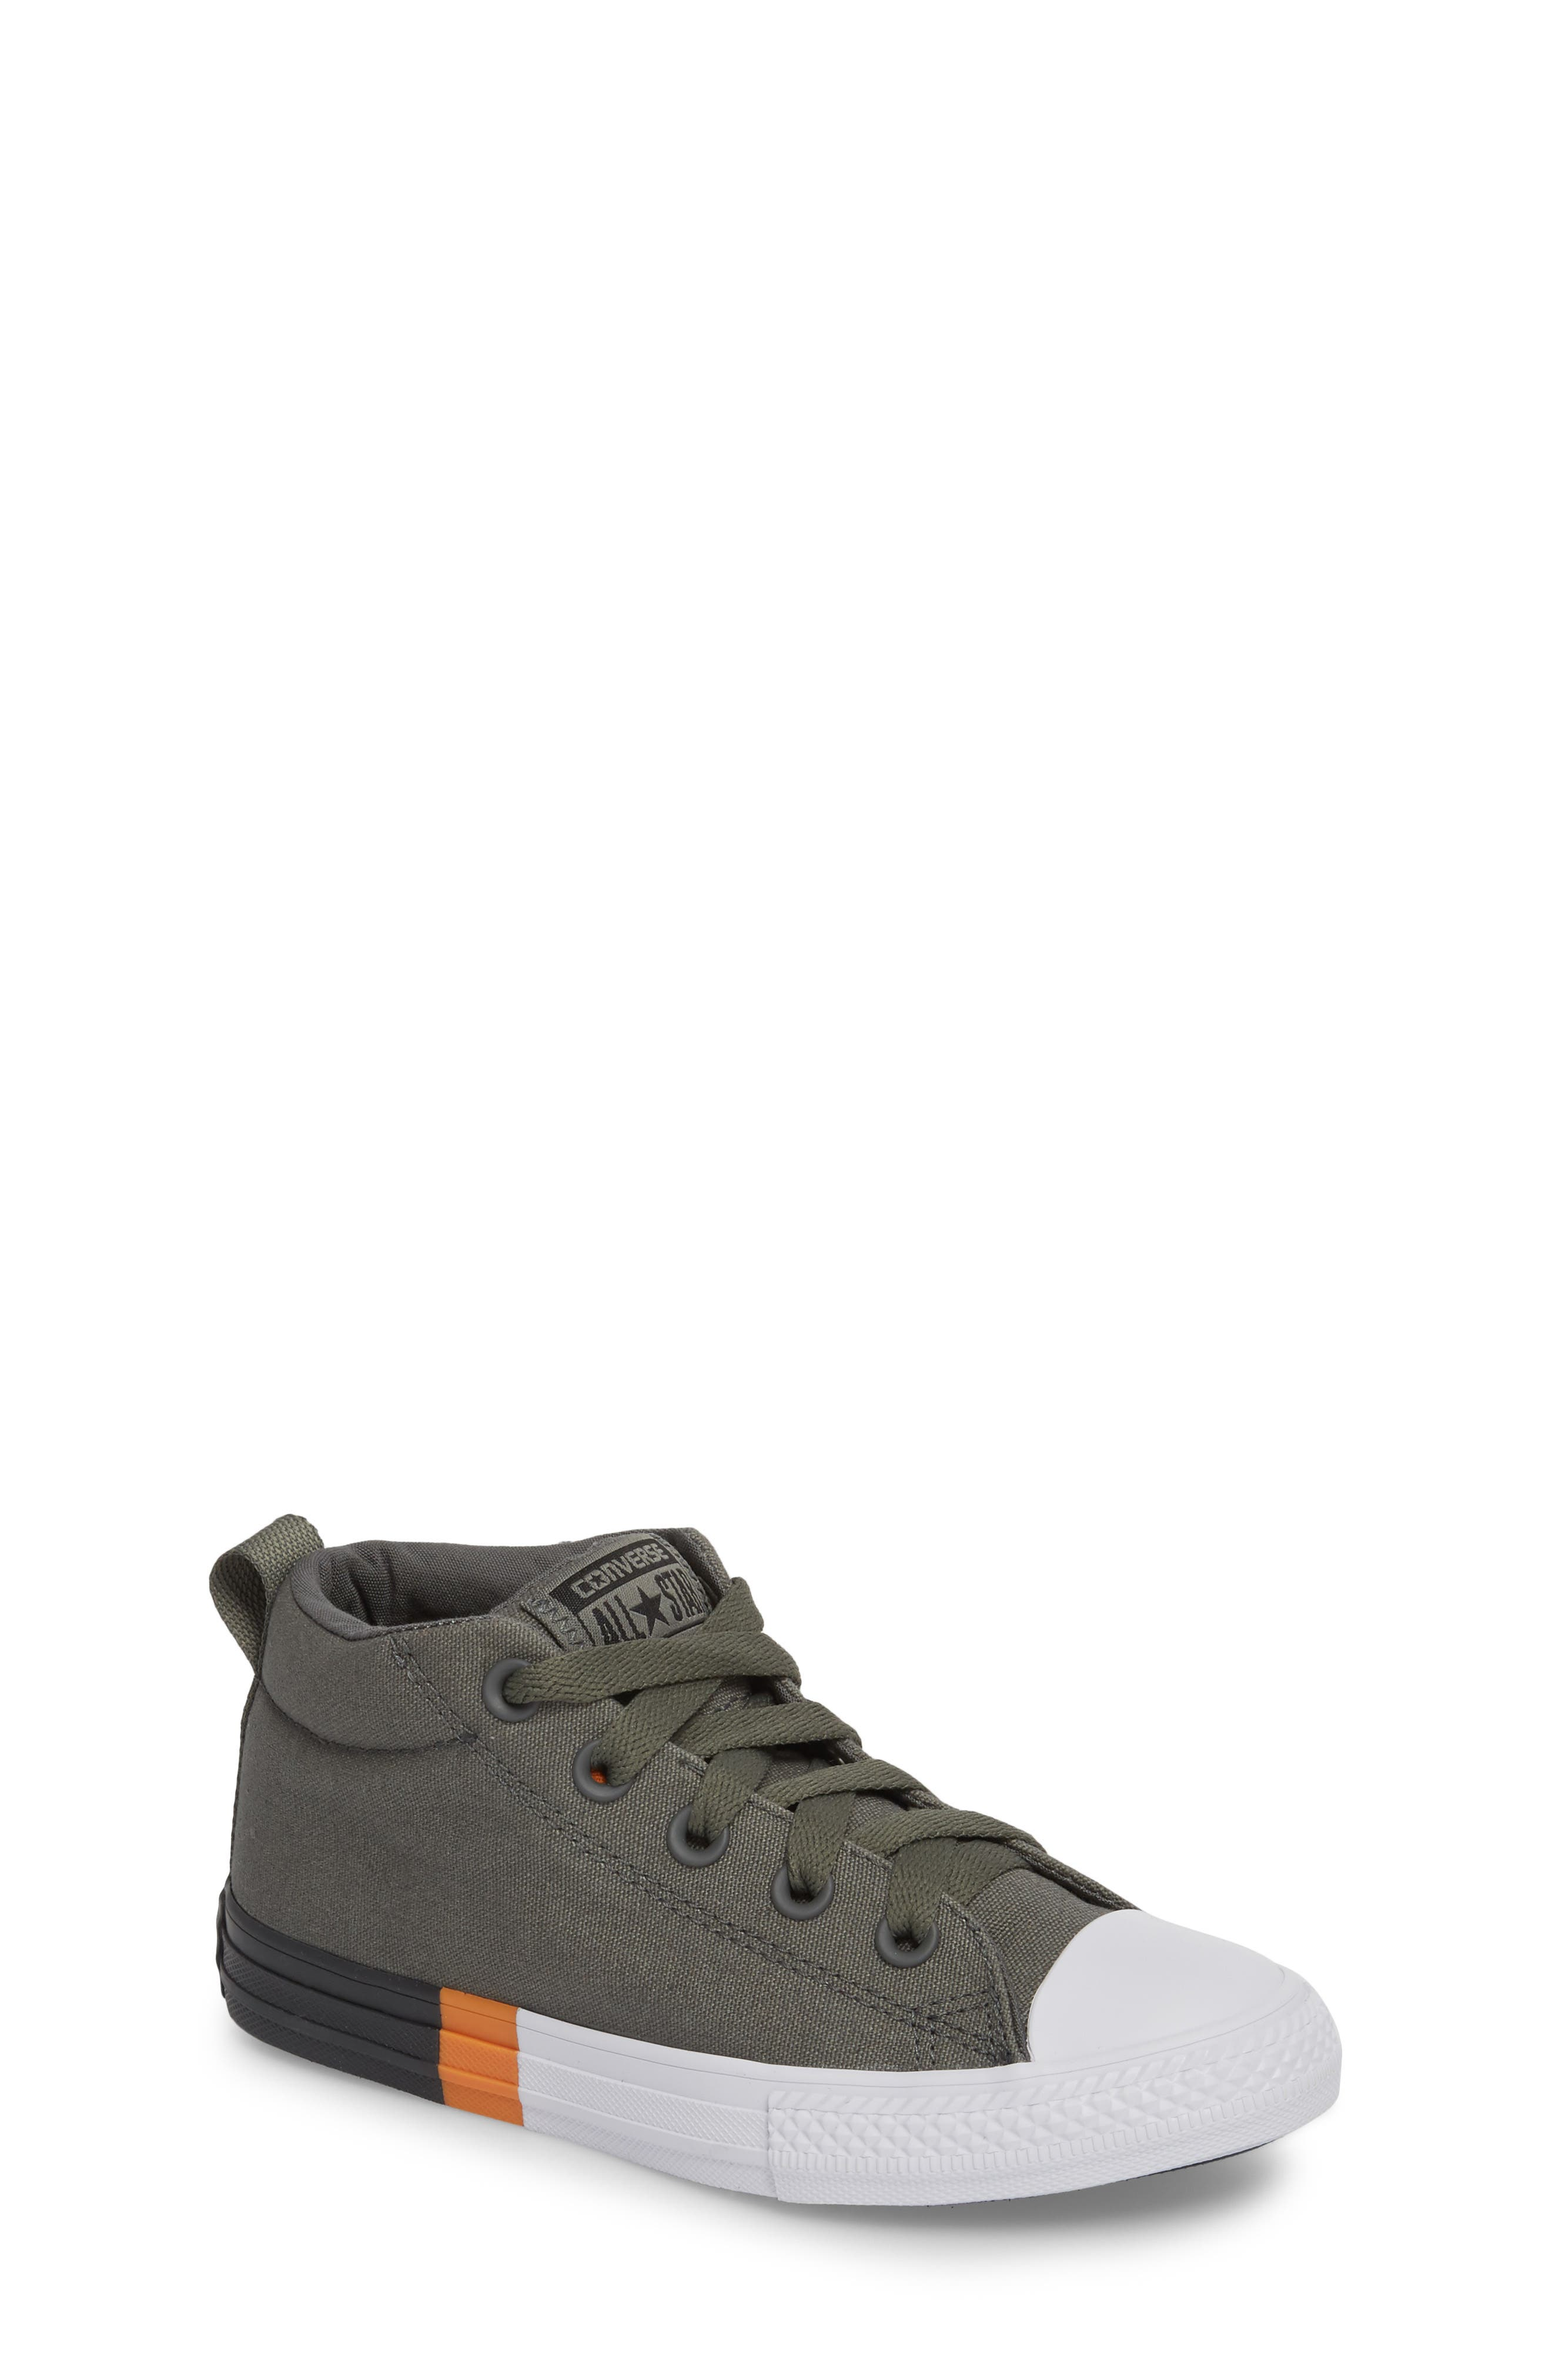 Chuck Taylor<sup>®</sup> All Star<sup>®</sup> Street Colorblock Mid Top Sneaker,                         Main,                         color, 088